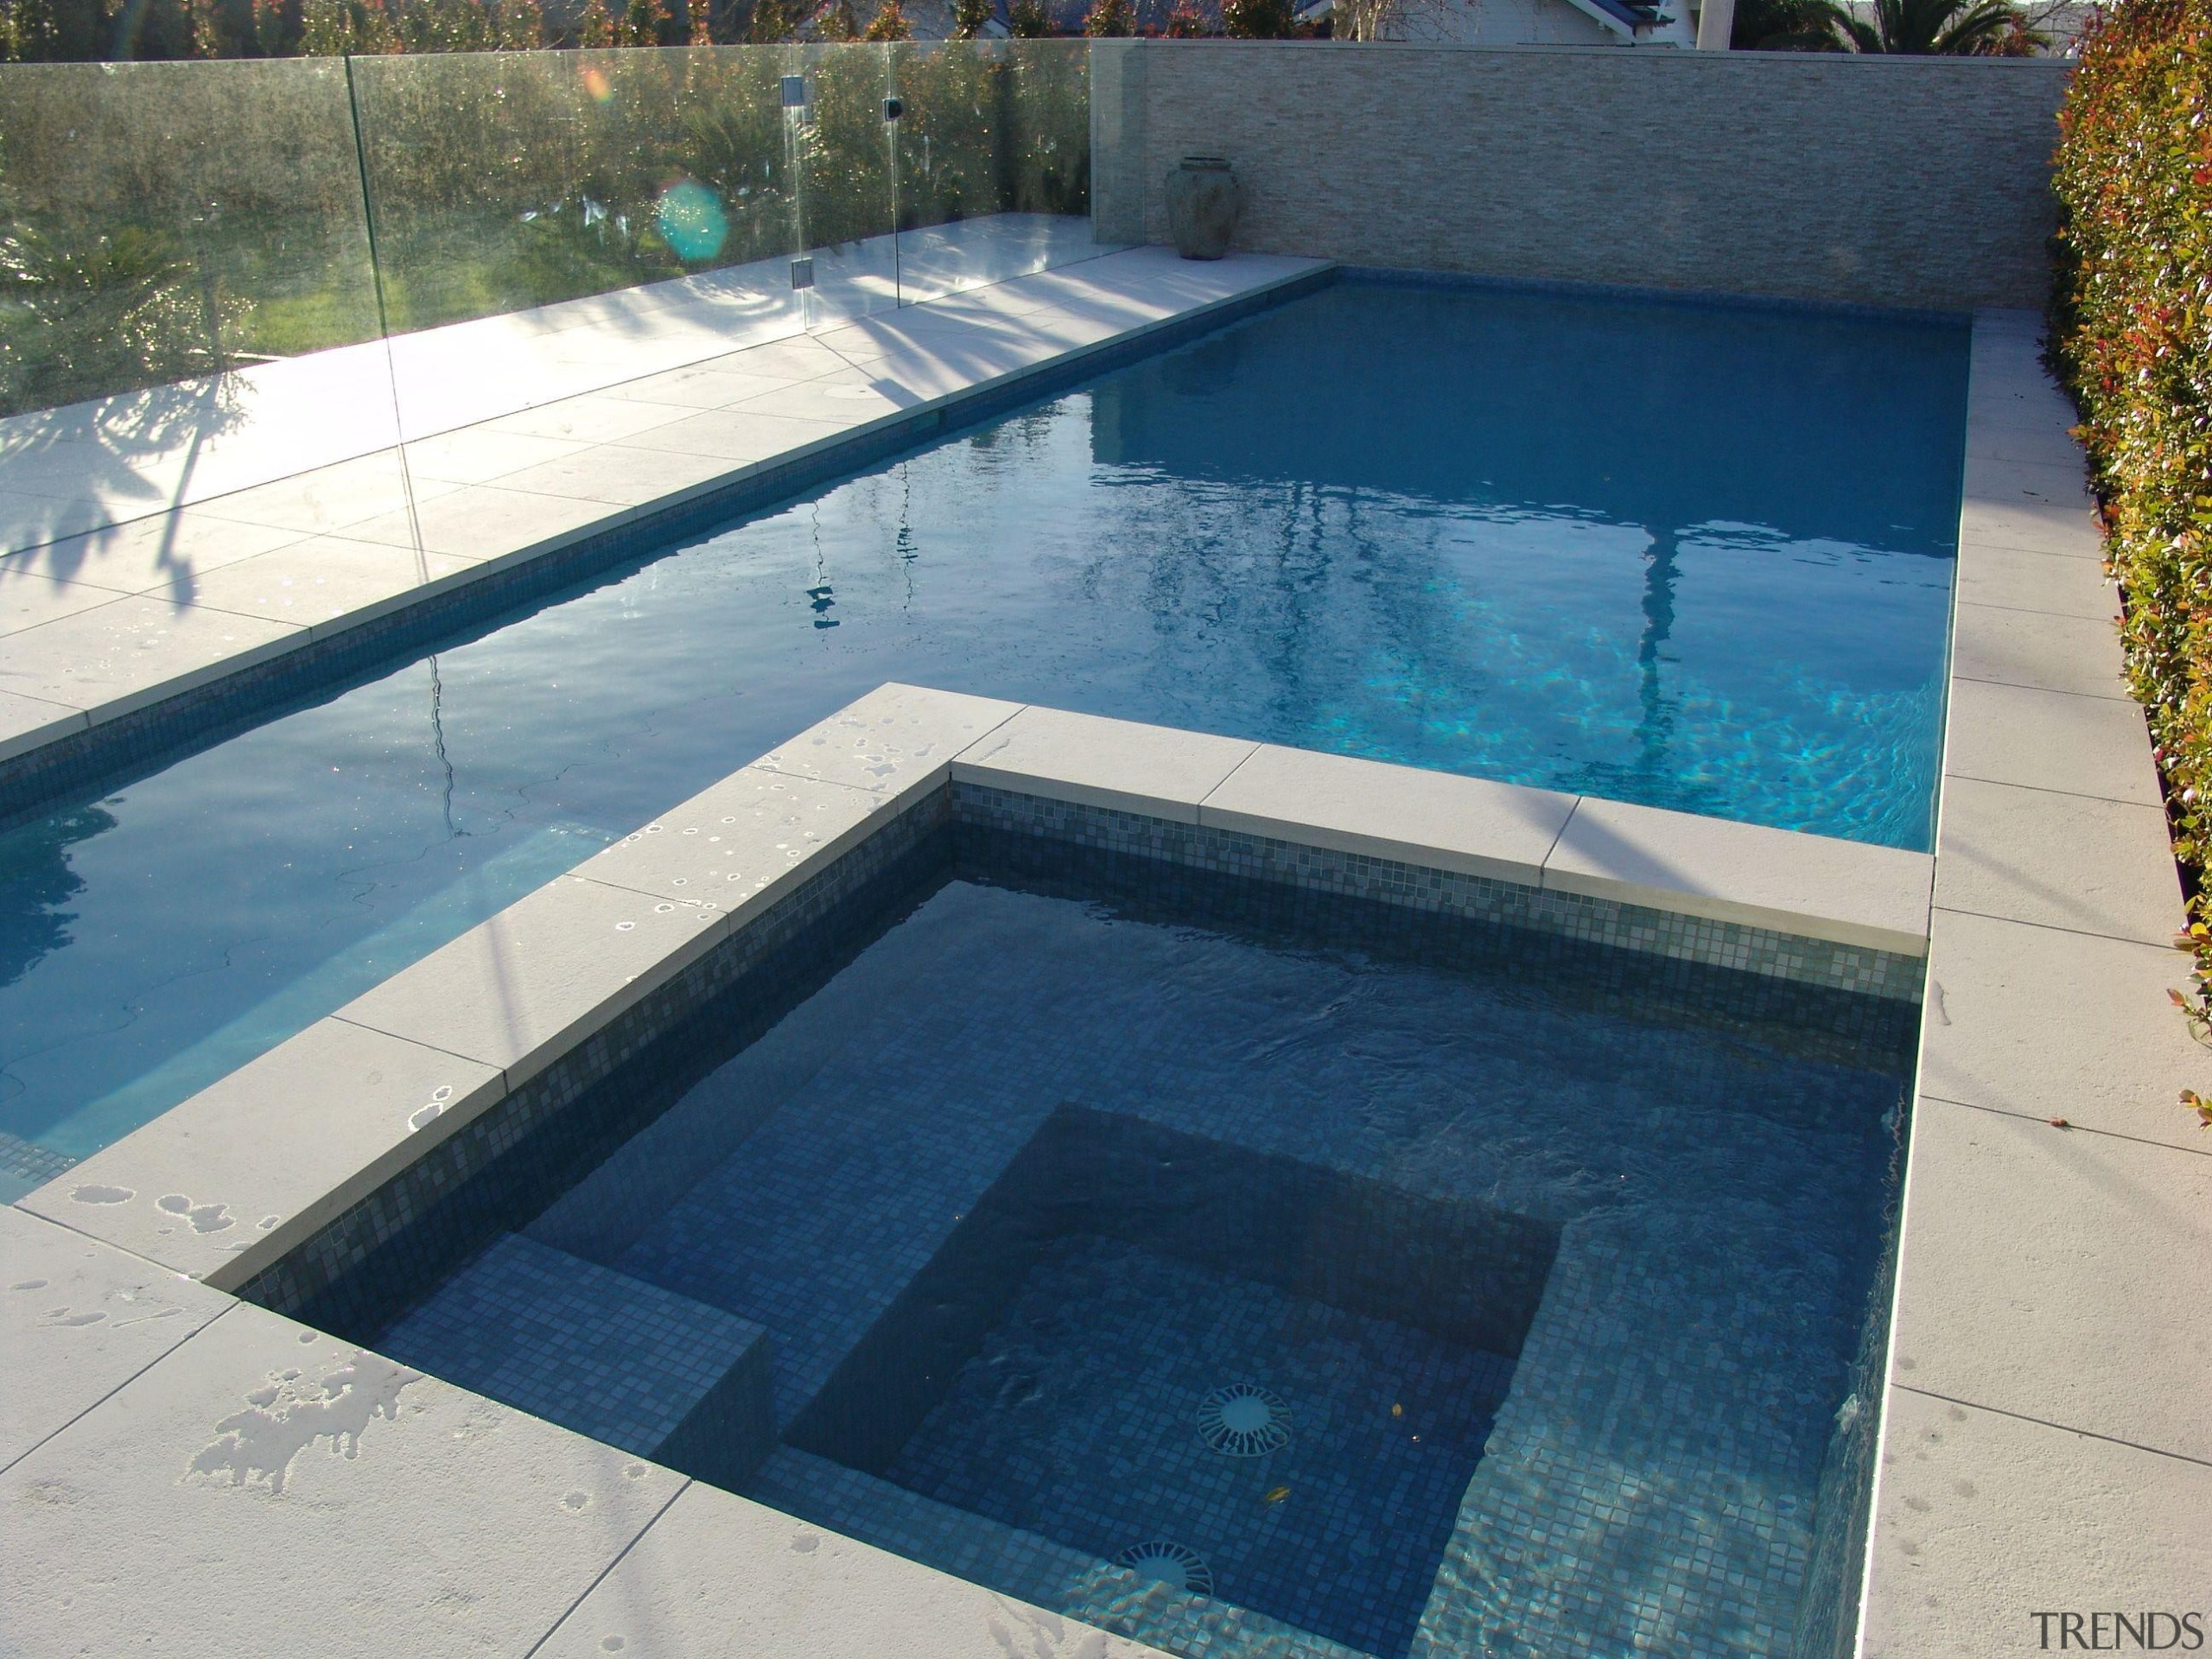 http://goo.gl/PfHsAn - Bisazza pool in Auckland residential home composite material, floor, leisure, property, swimming pool, water, water resources, gray, blue